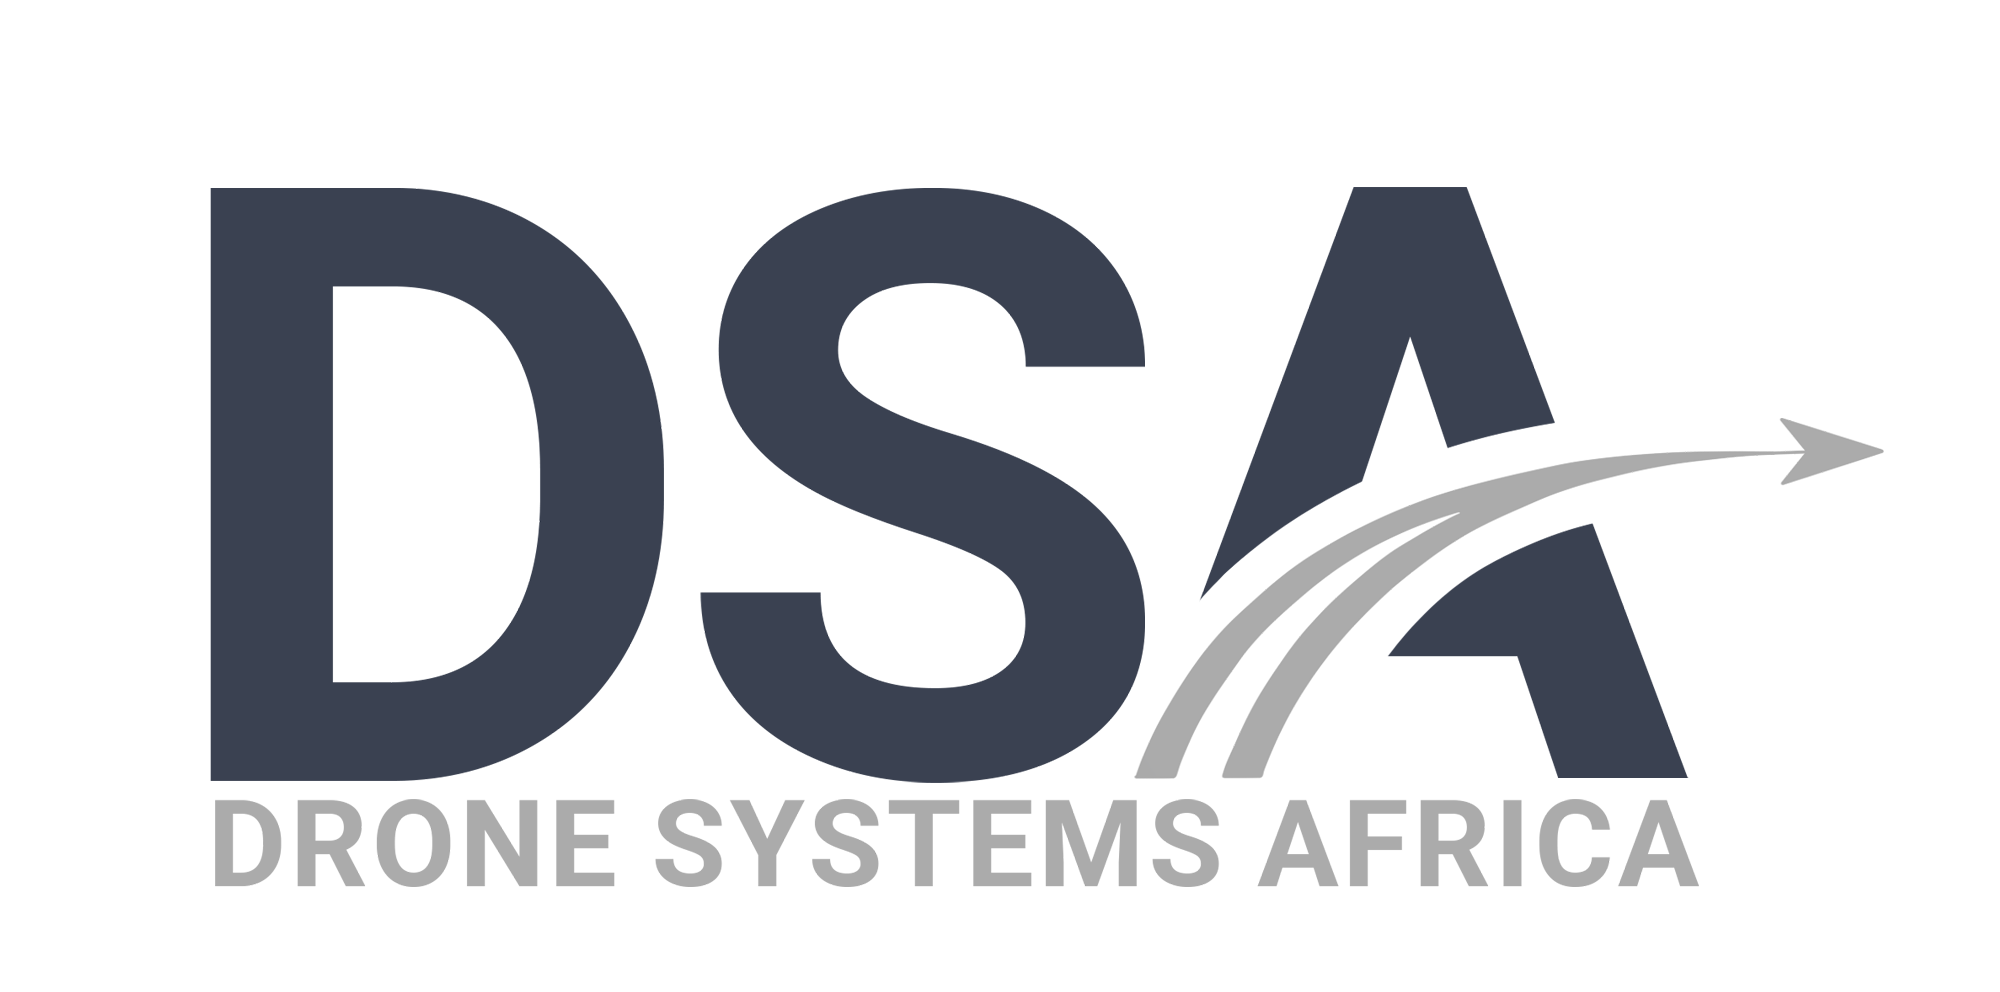 Drone Systems Africa